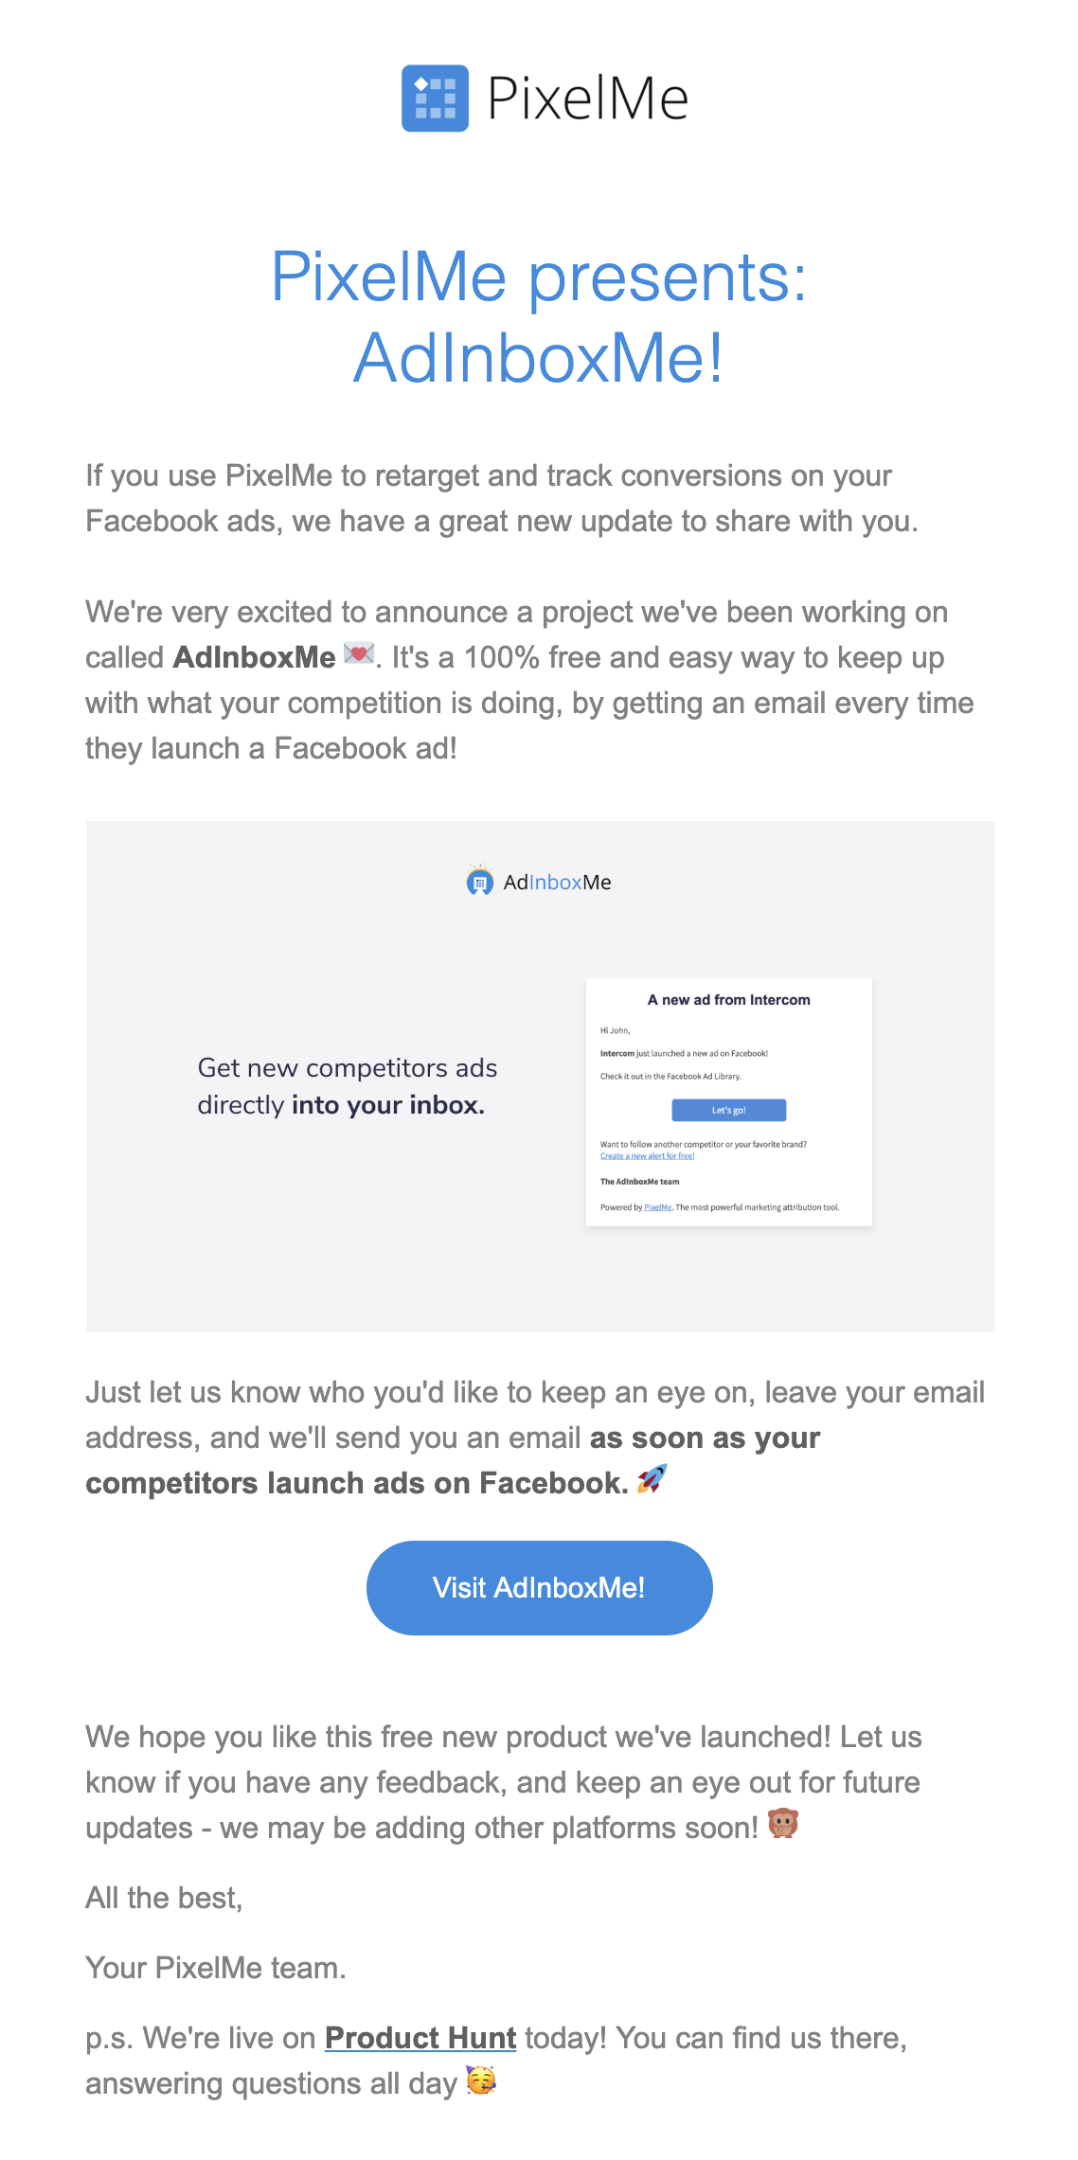 11 Powerful B2B Email Templates That Win Customers